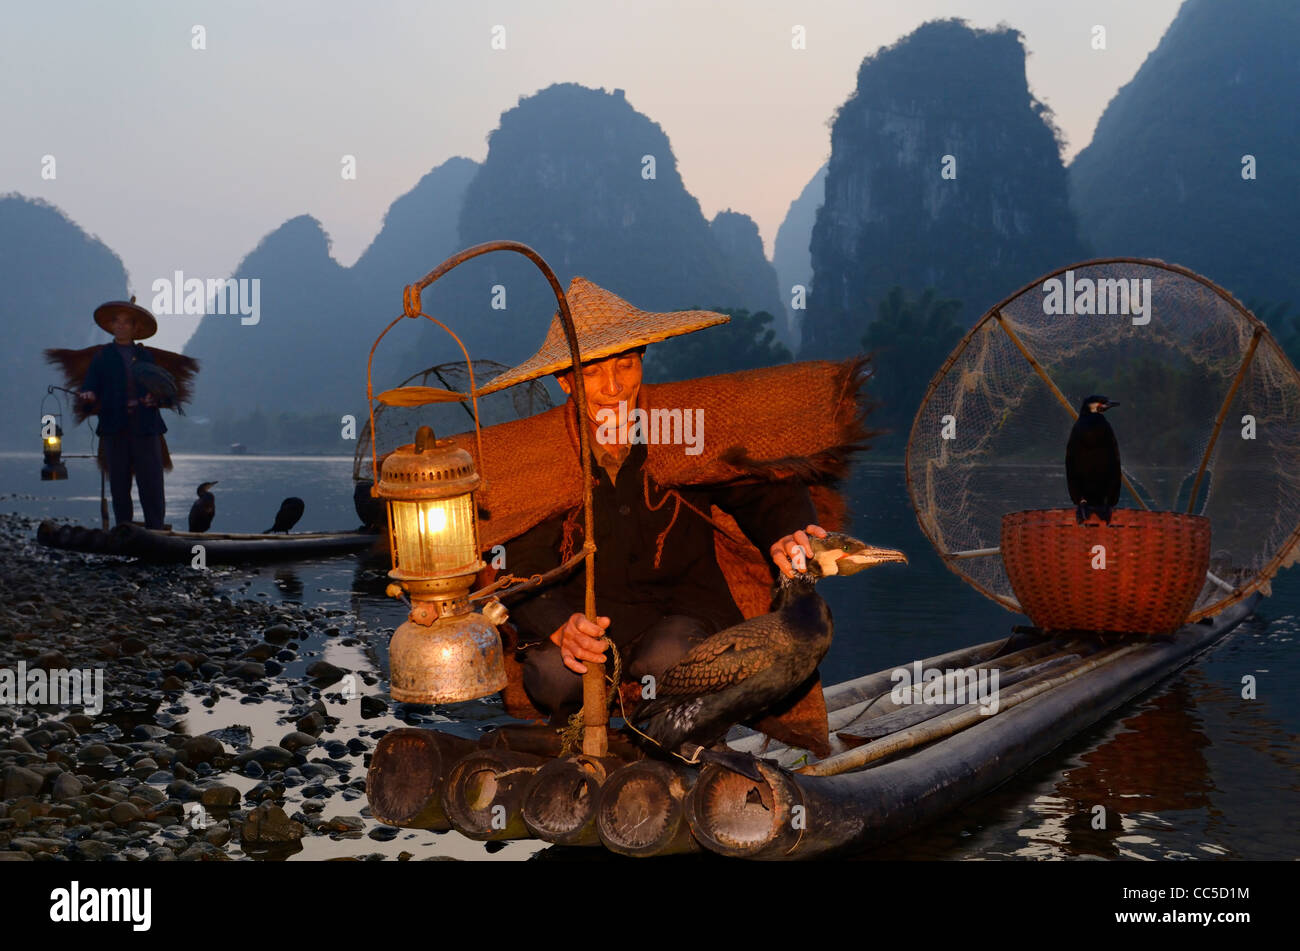 Chinese fishermen with cormorants at dawn on the Li river and tall karst formation mountains Yangshuo China - Stock Image